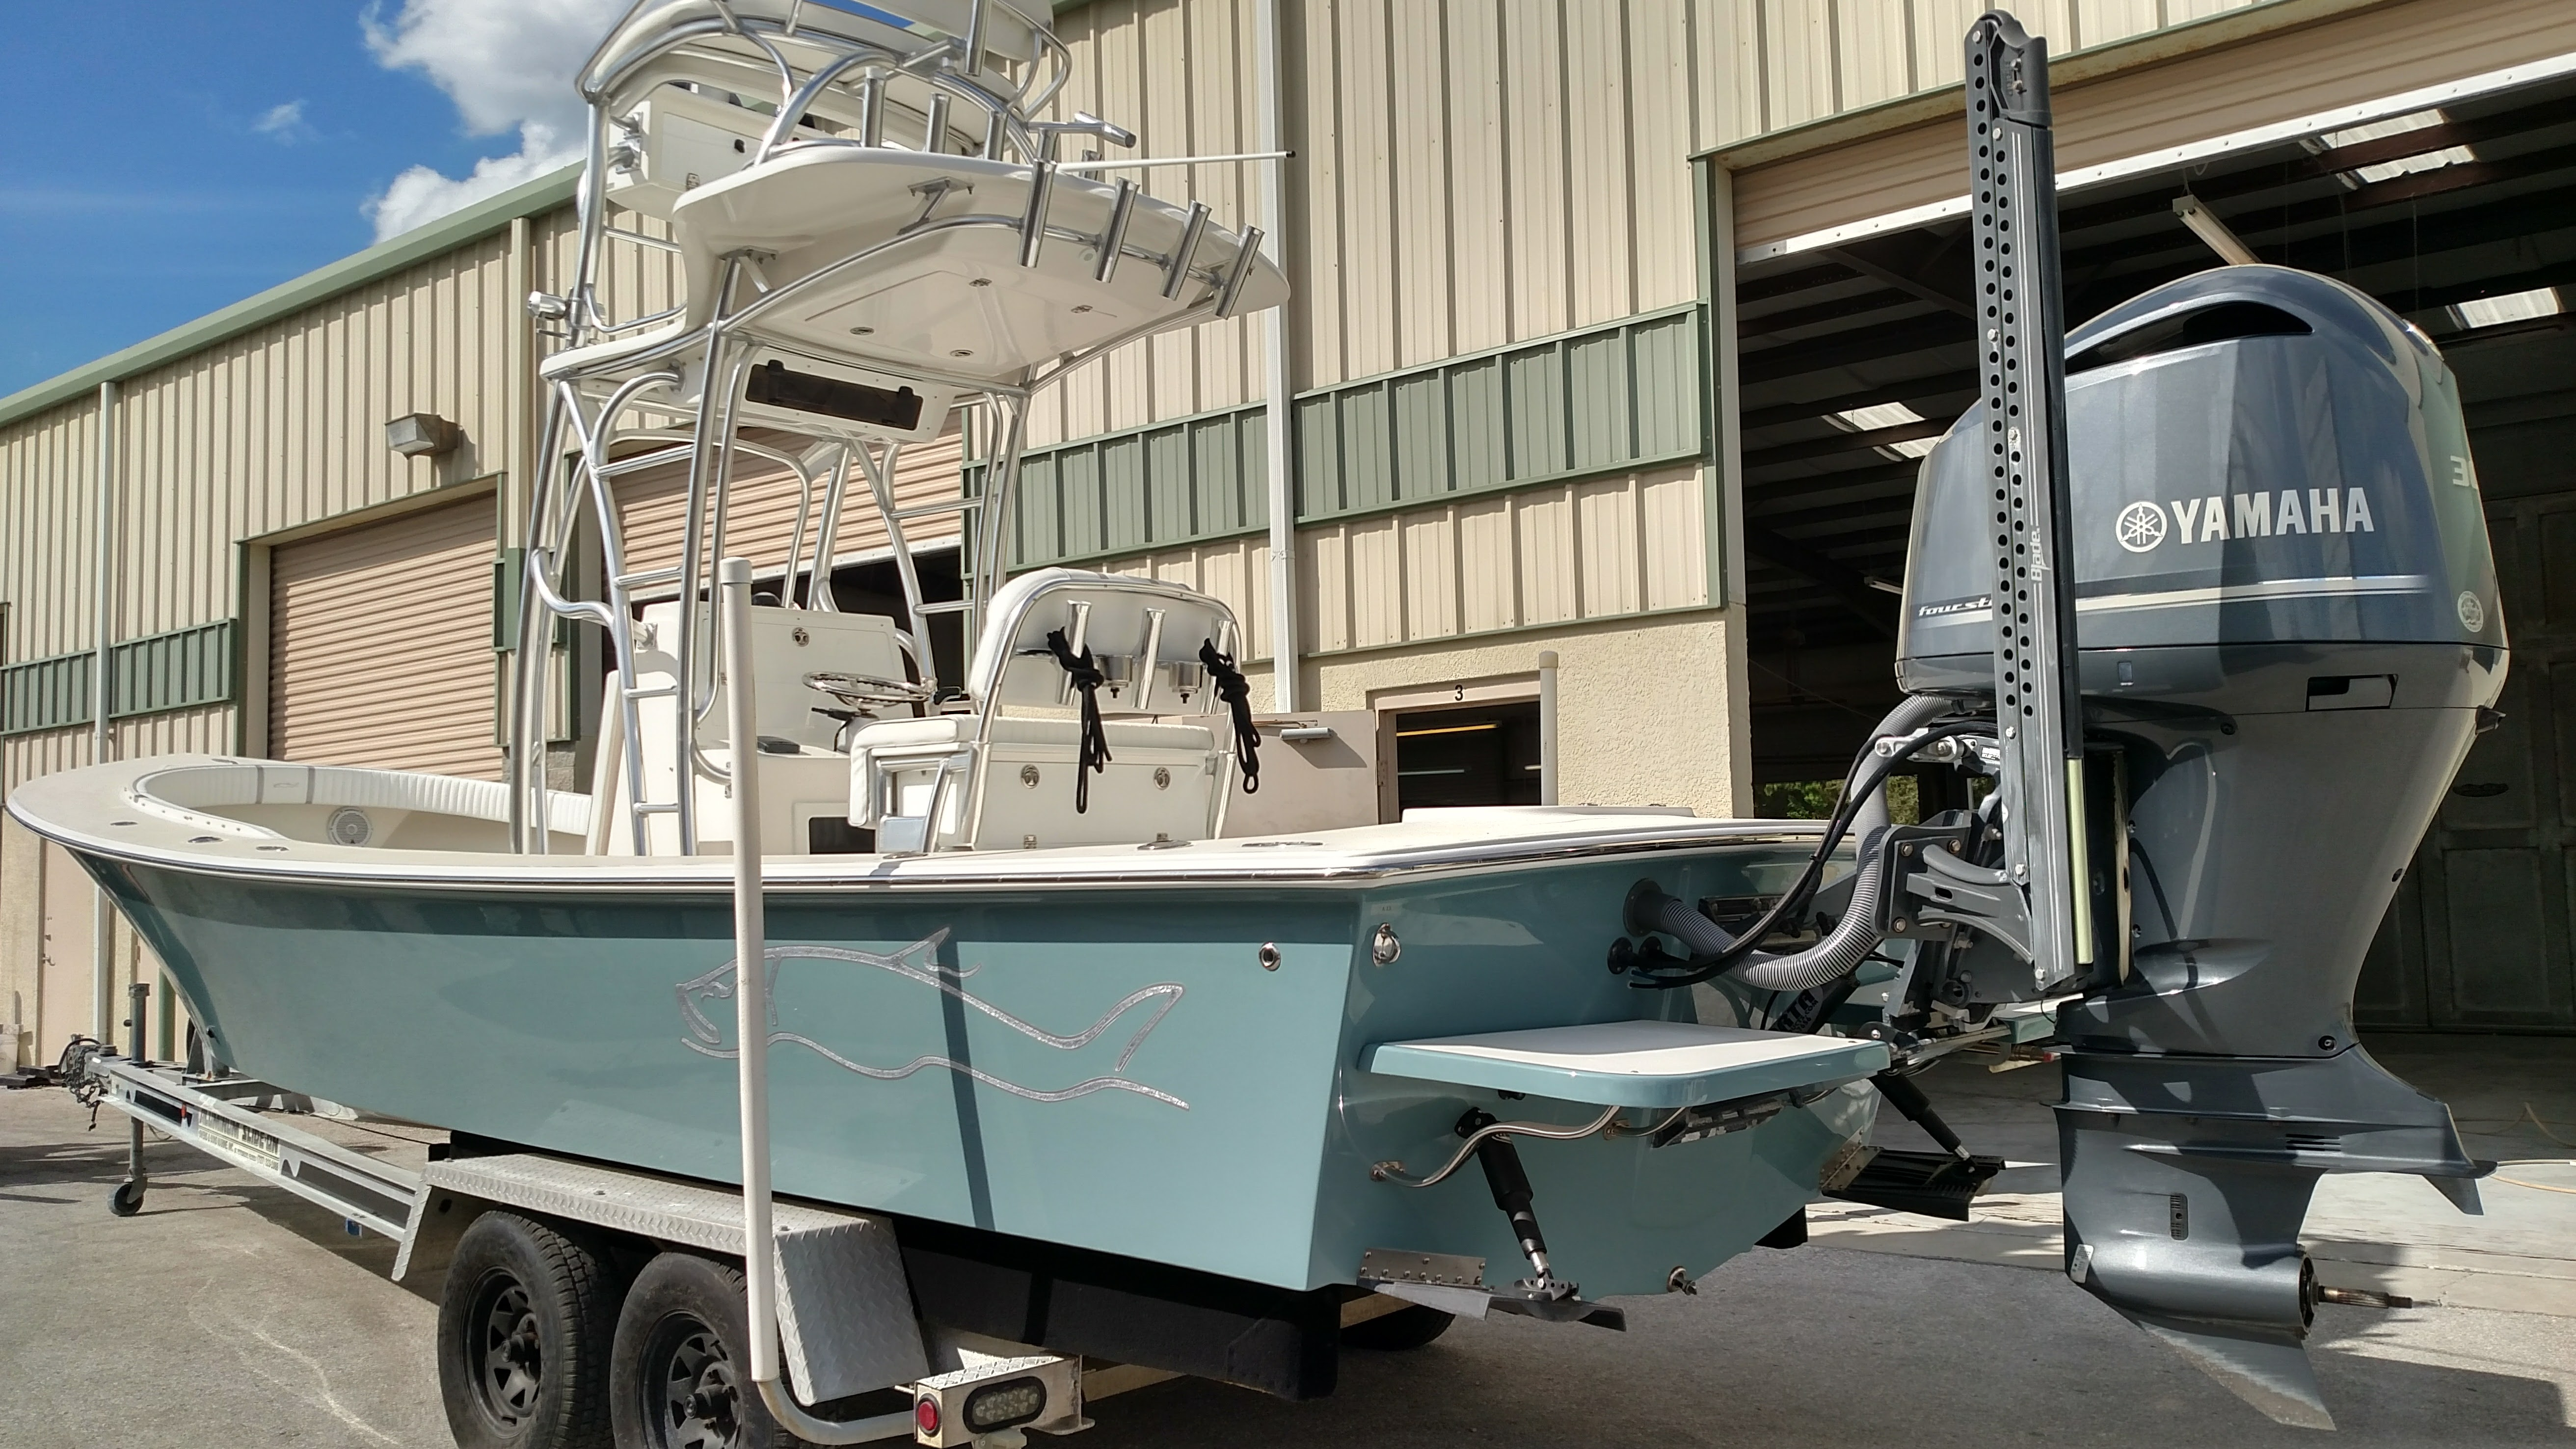 2008/2013 Gause Built 26 - SOLD